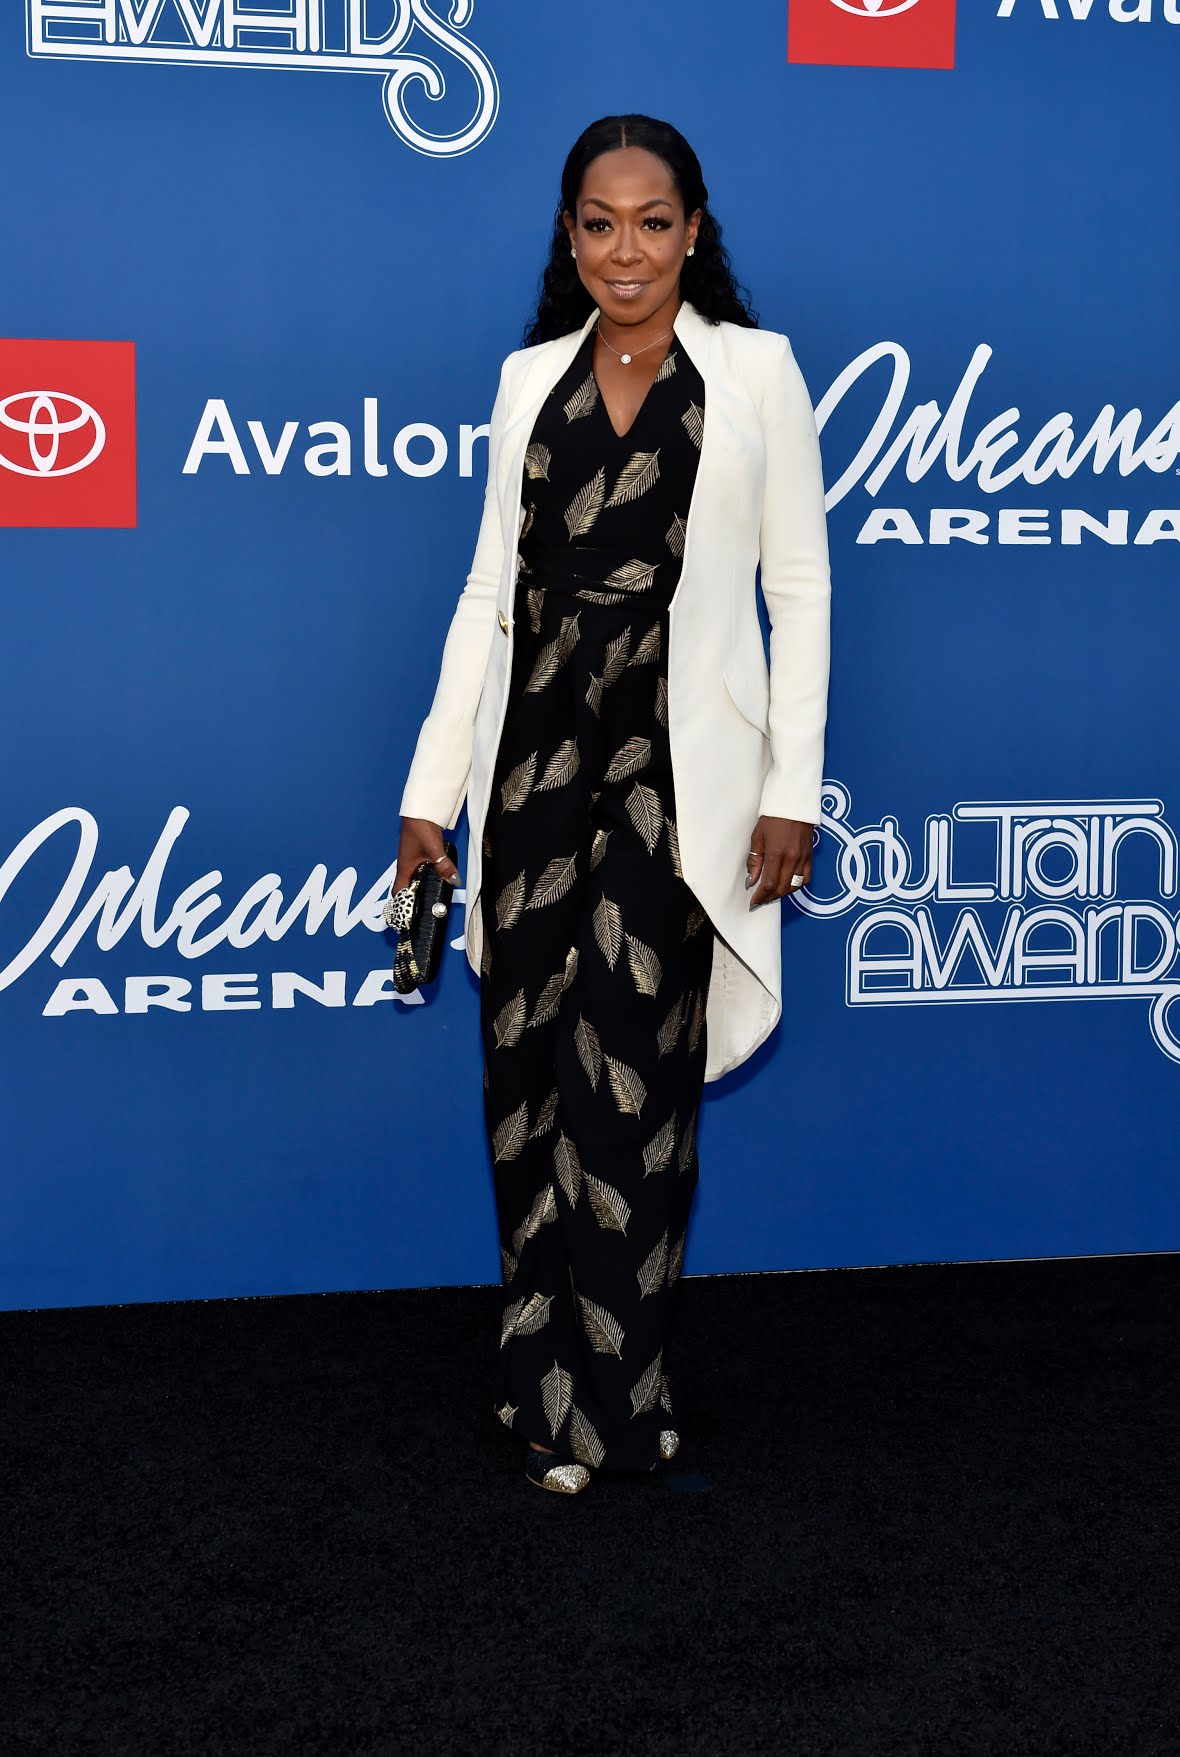 SOUL TRAIN AWARD 2018 RED CARPET HOST TICHINA ARNOLD.jpg